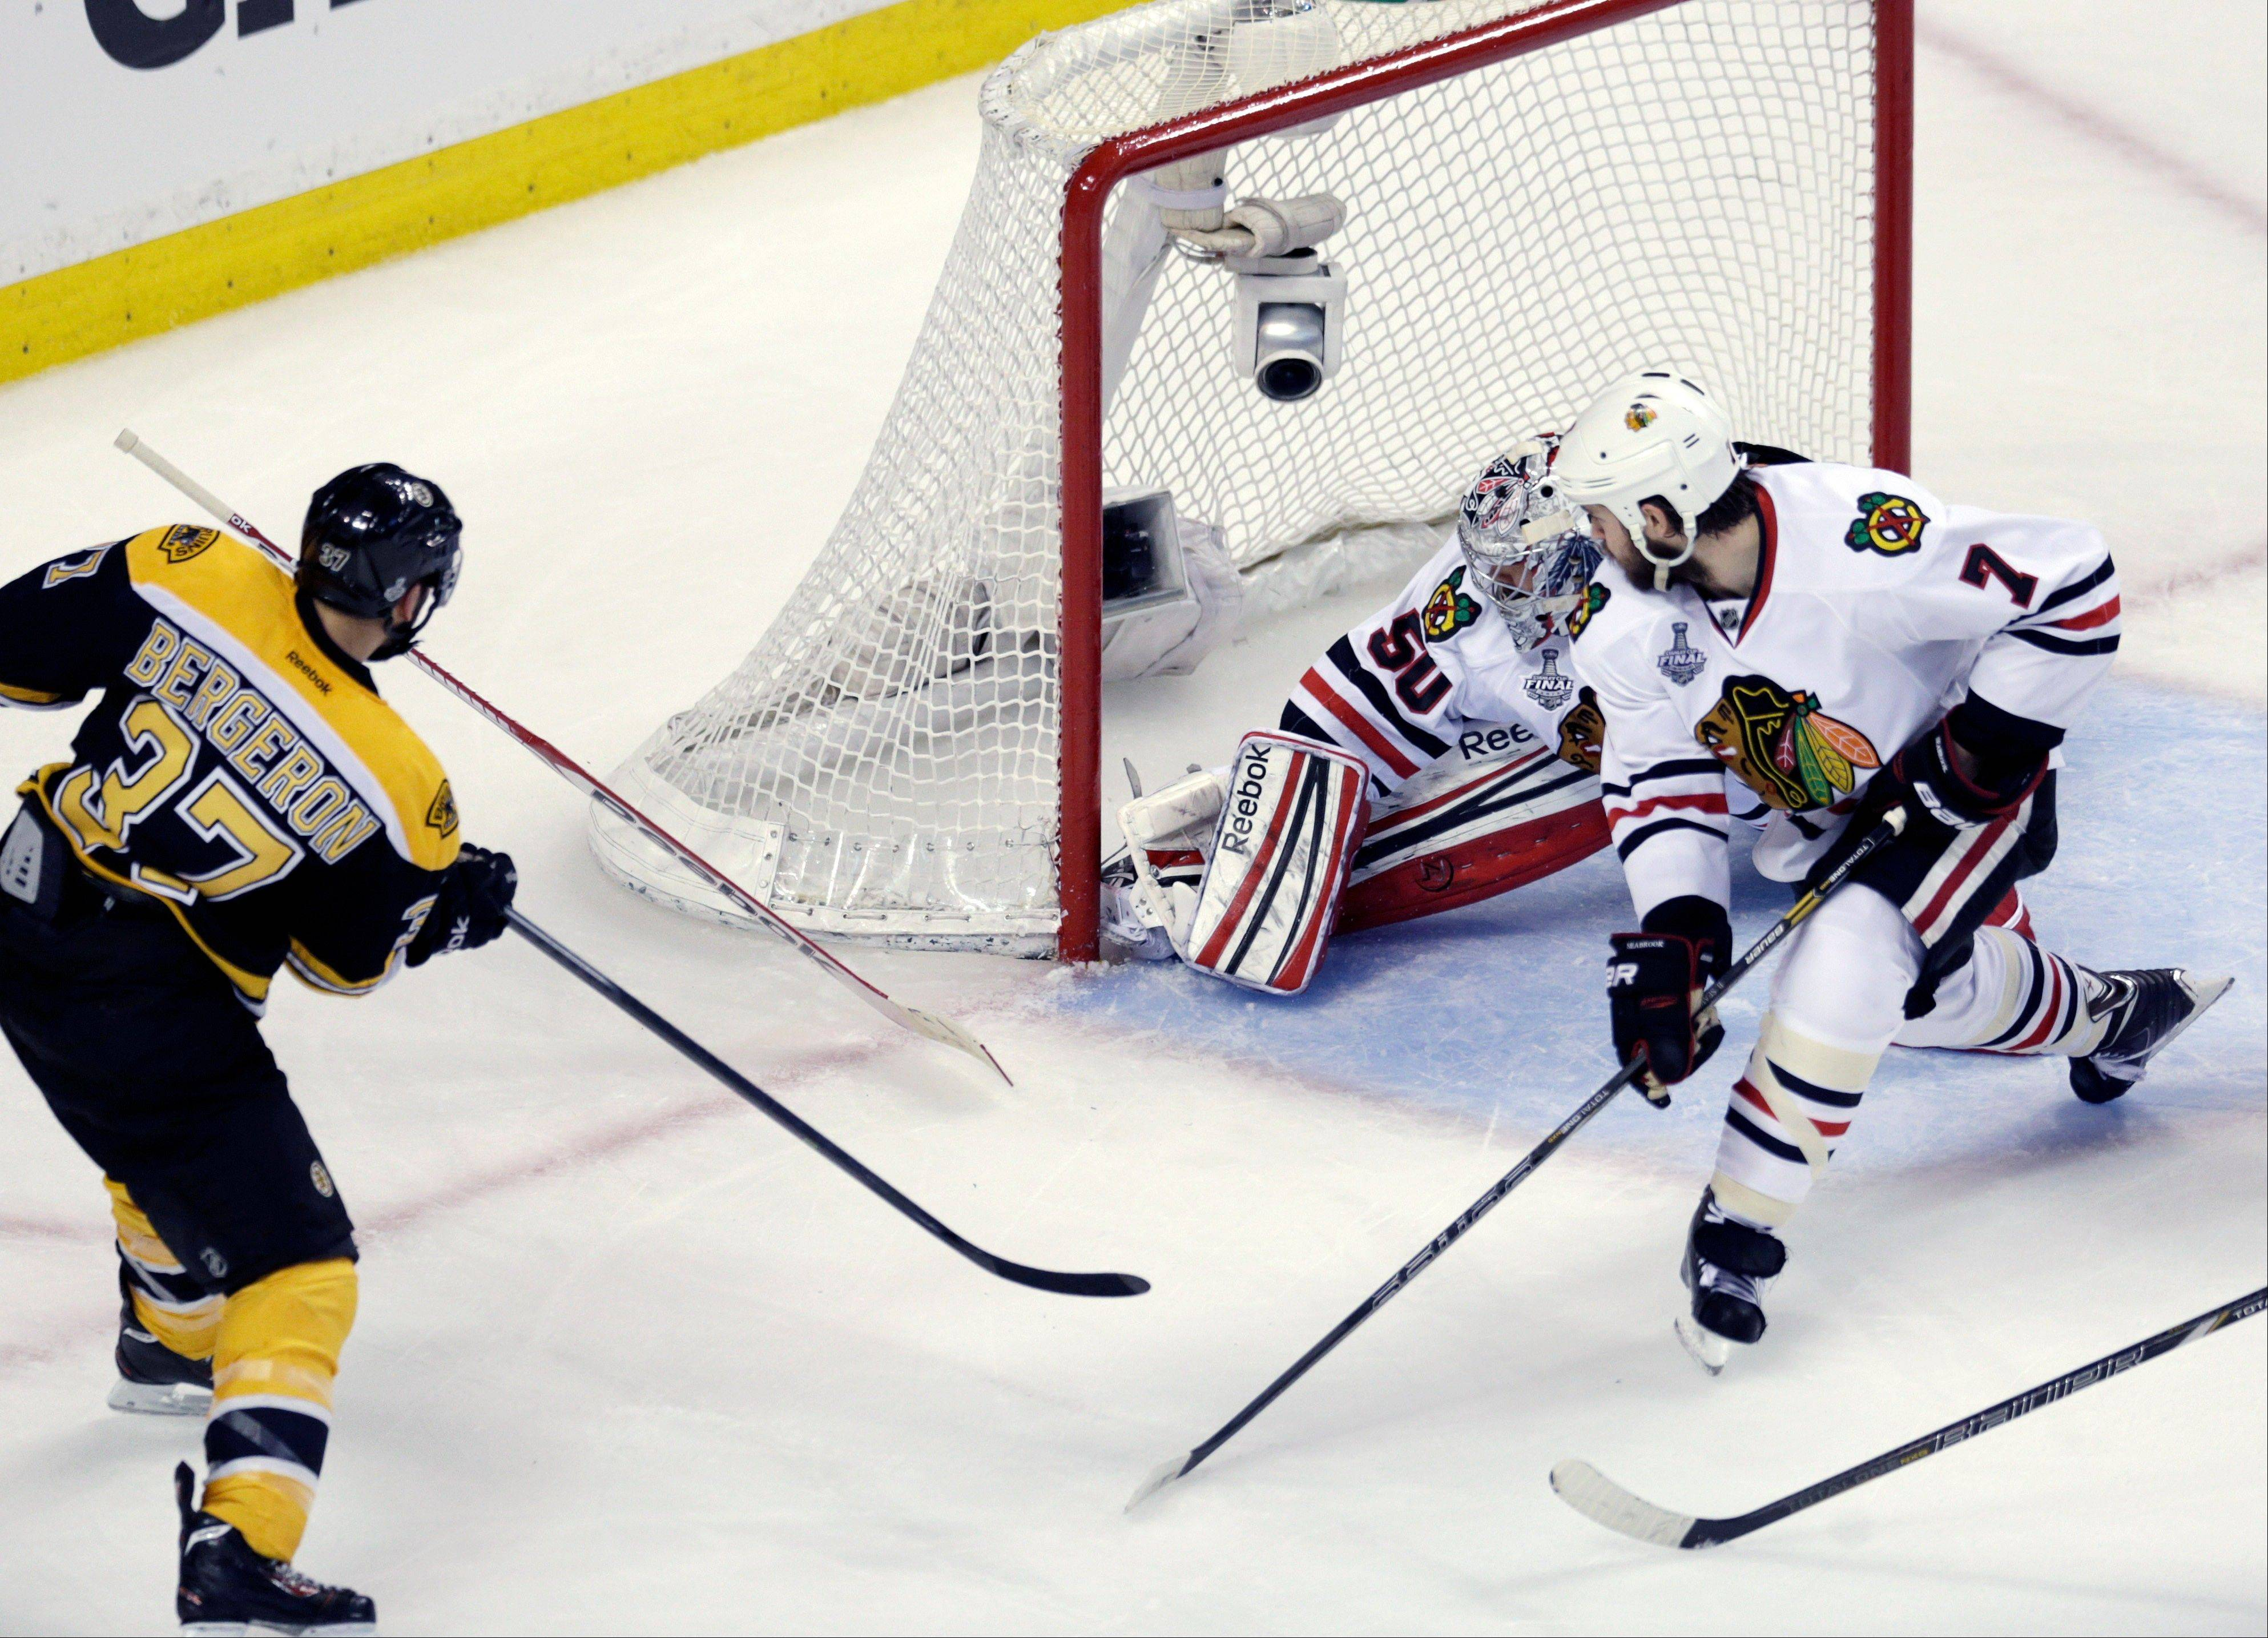 Boston Bruins center Patrice Bergeron (37) scores a goal past Chicago Blackhawks goalie Corey Crawford (50) and defenseman Brent Seabrook (7)during the second period in Game 3 of the NHL hockey Stanley Cup Finals in Boston, Monday, June 17, 2013.